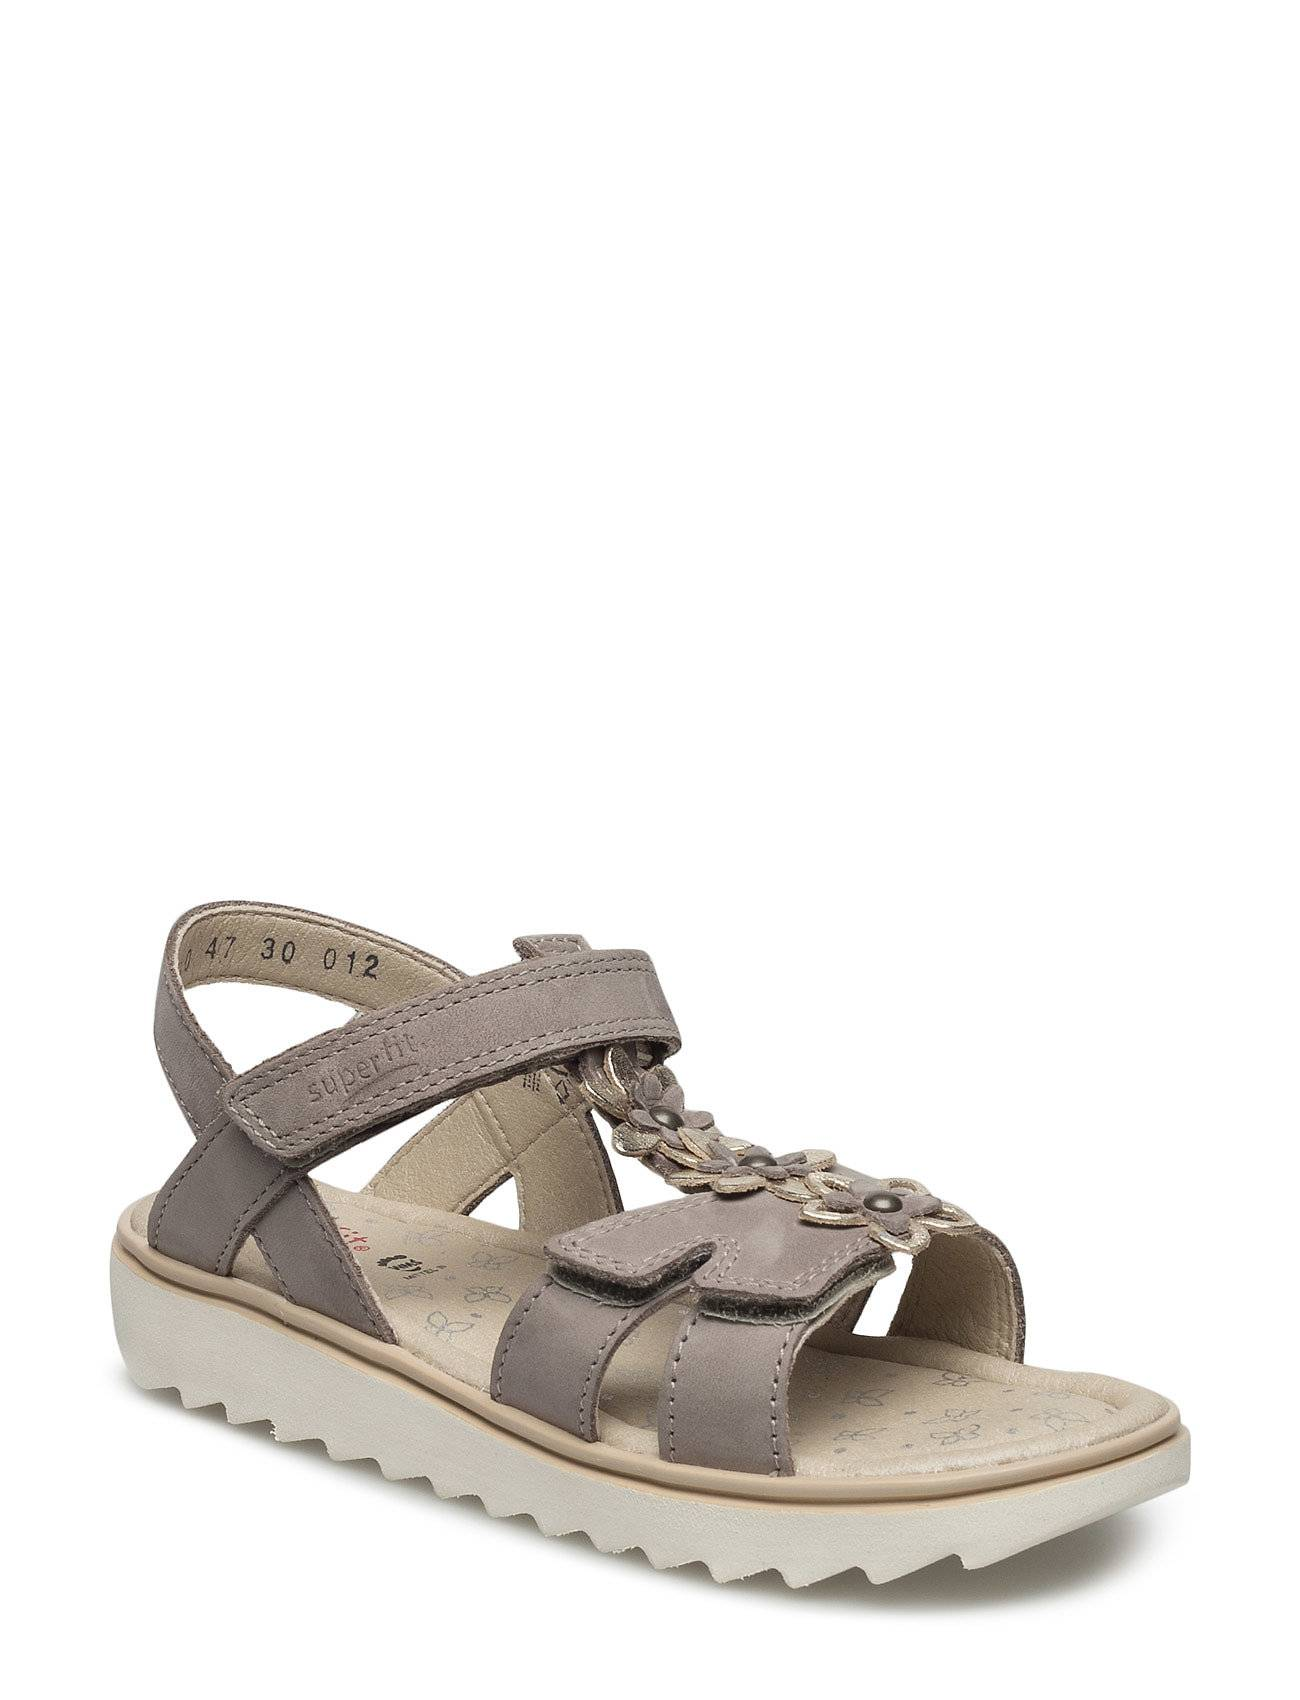 Superfit Elly Sandals